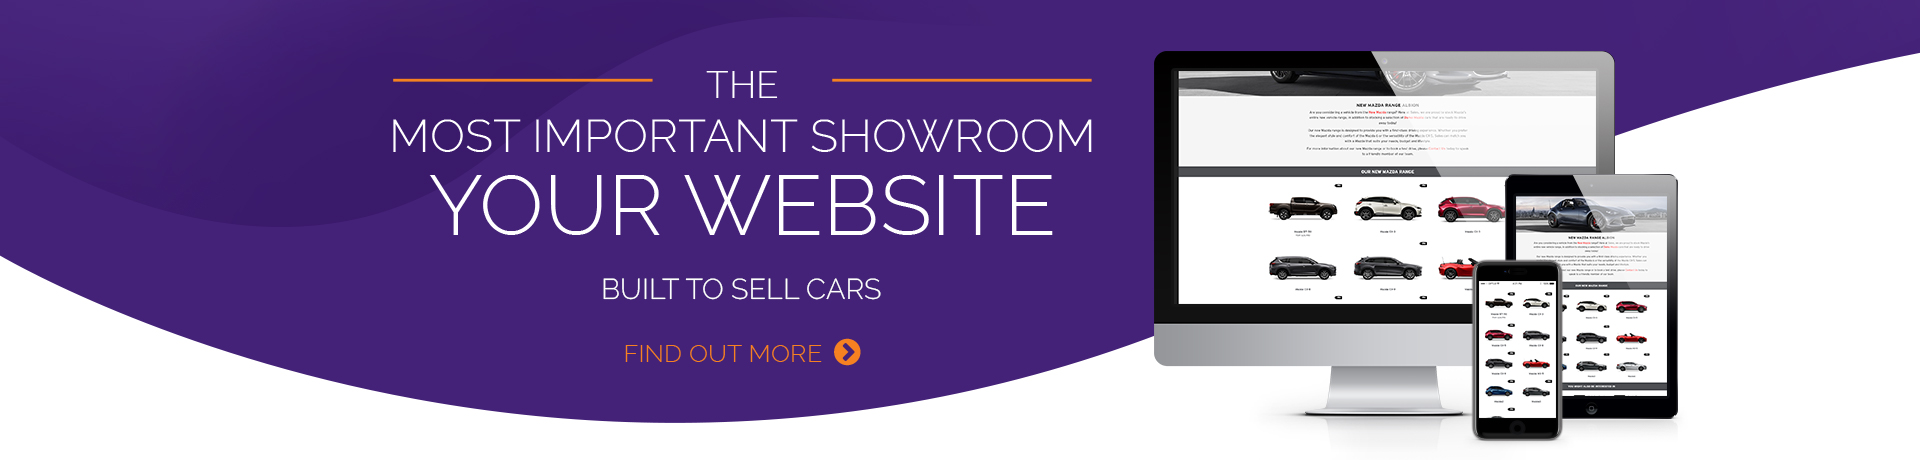 WE HAVE A RESPONSIVE WEBSITE OPTION TO SUIT ANY DEALERSHIP